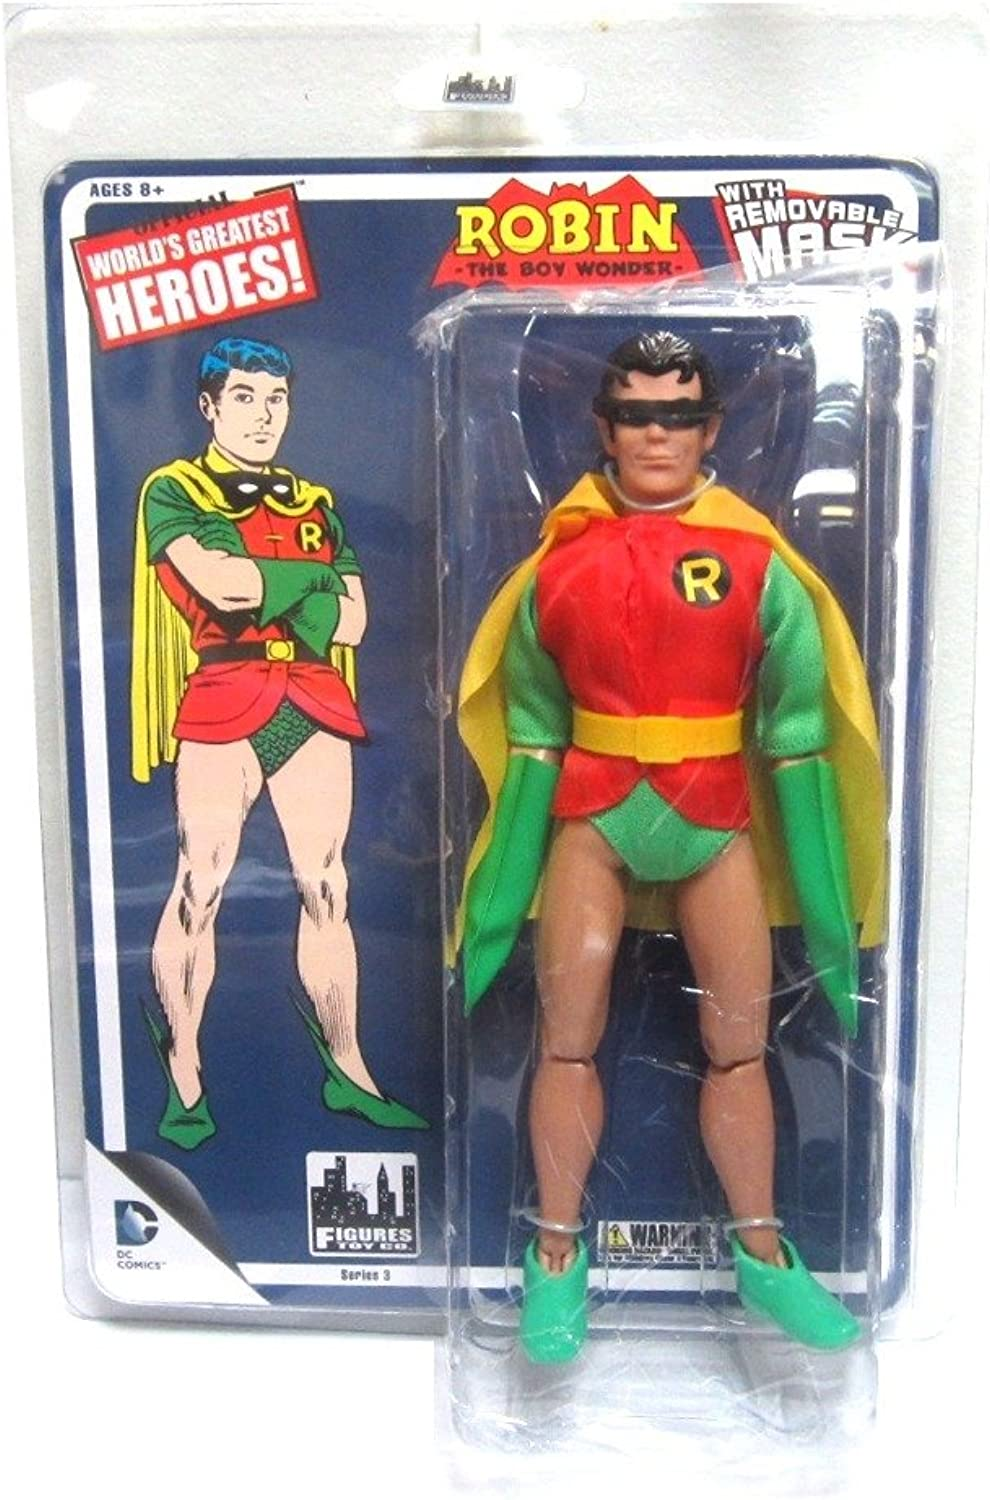 Robin with Removable Mask Retro MEGO Replica DC Comics Series 3 Action Figure